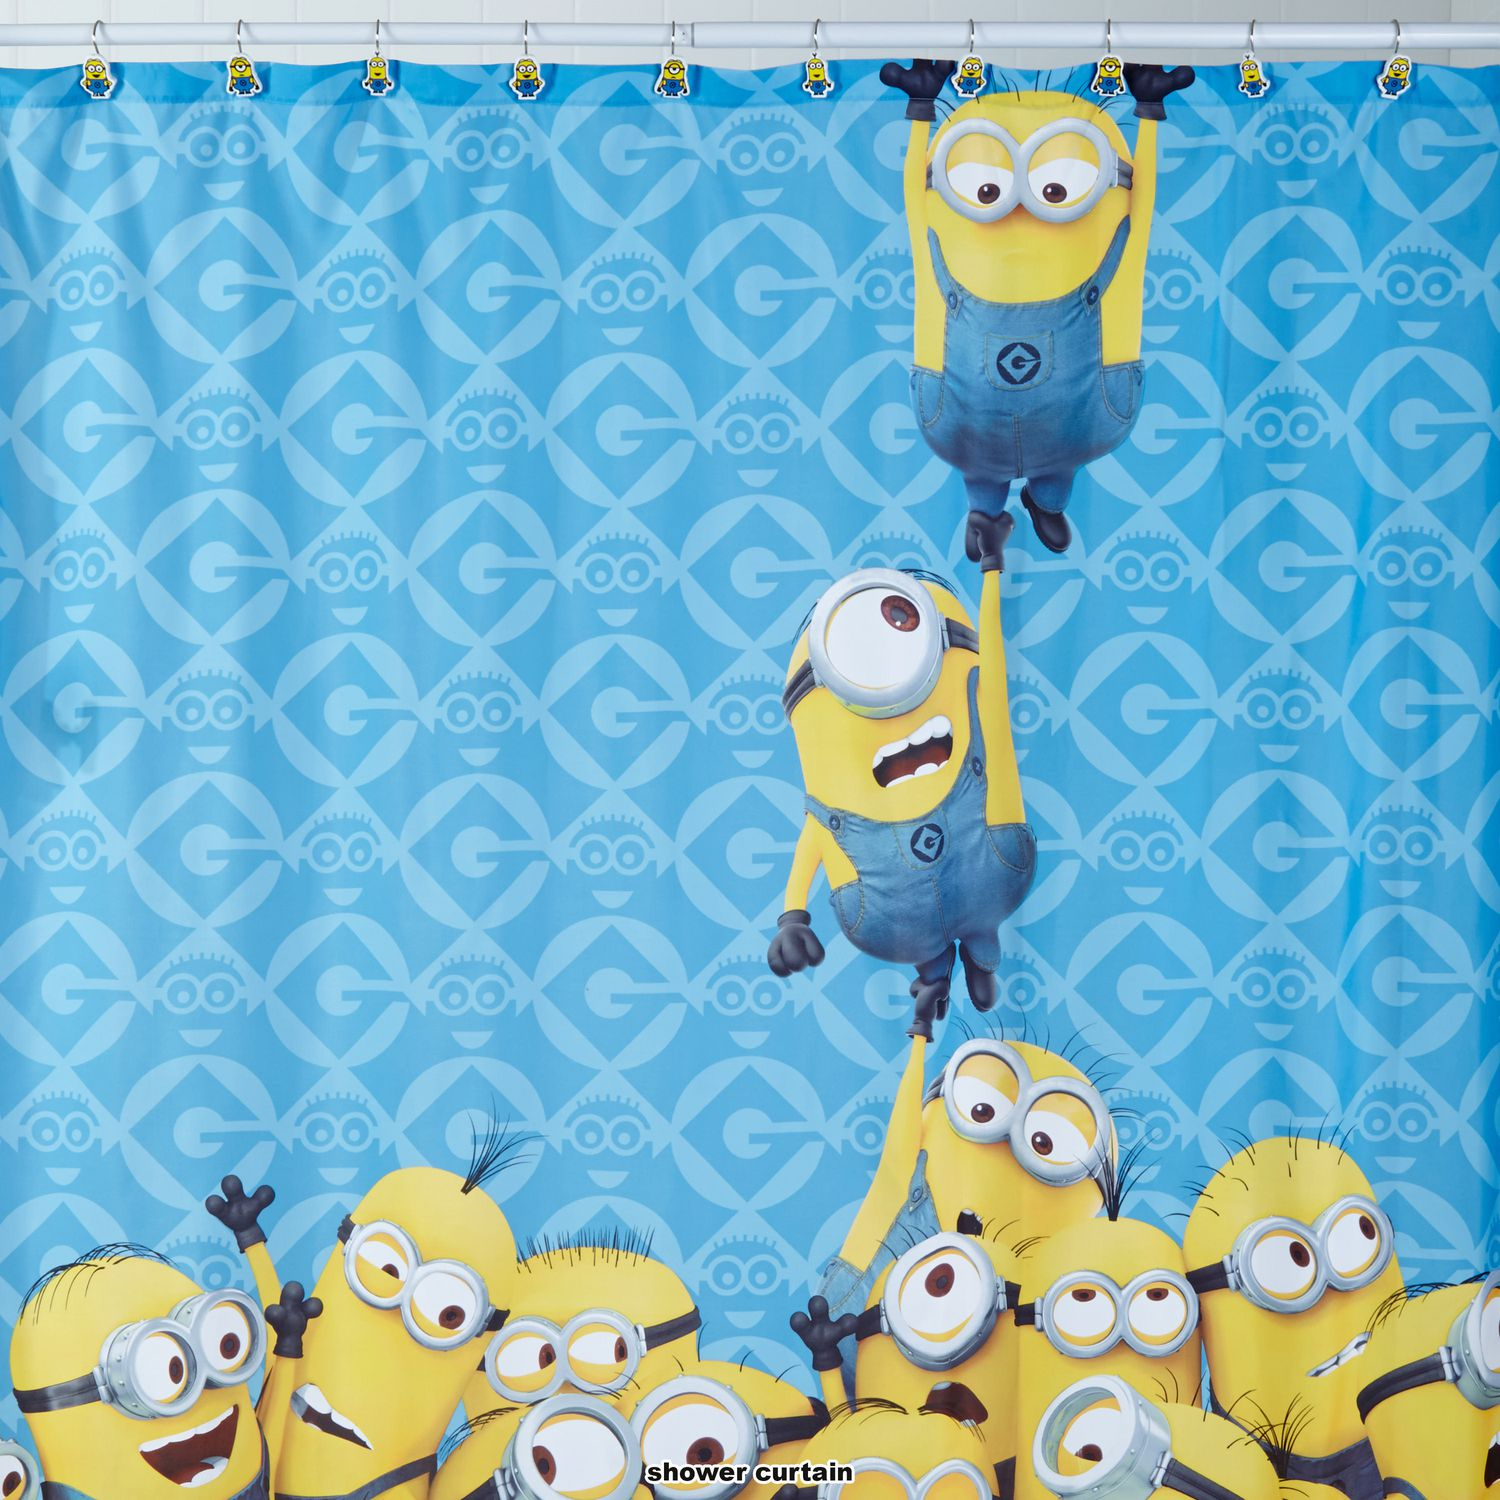 Bathroom curtains from walmart - Bathroom Curtains From Walmart 39